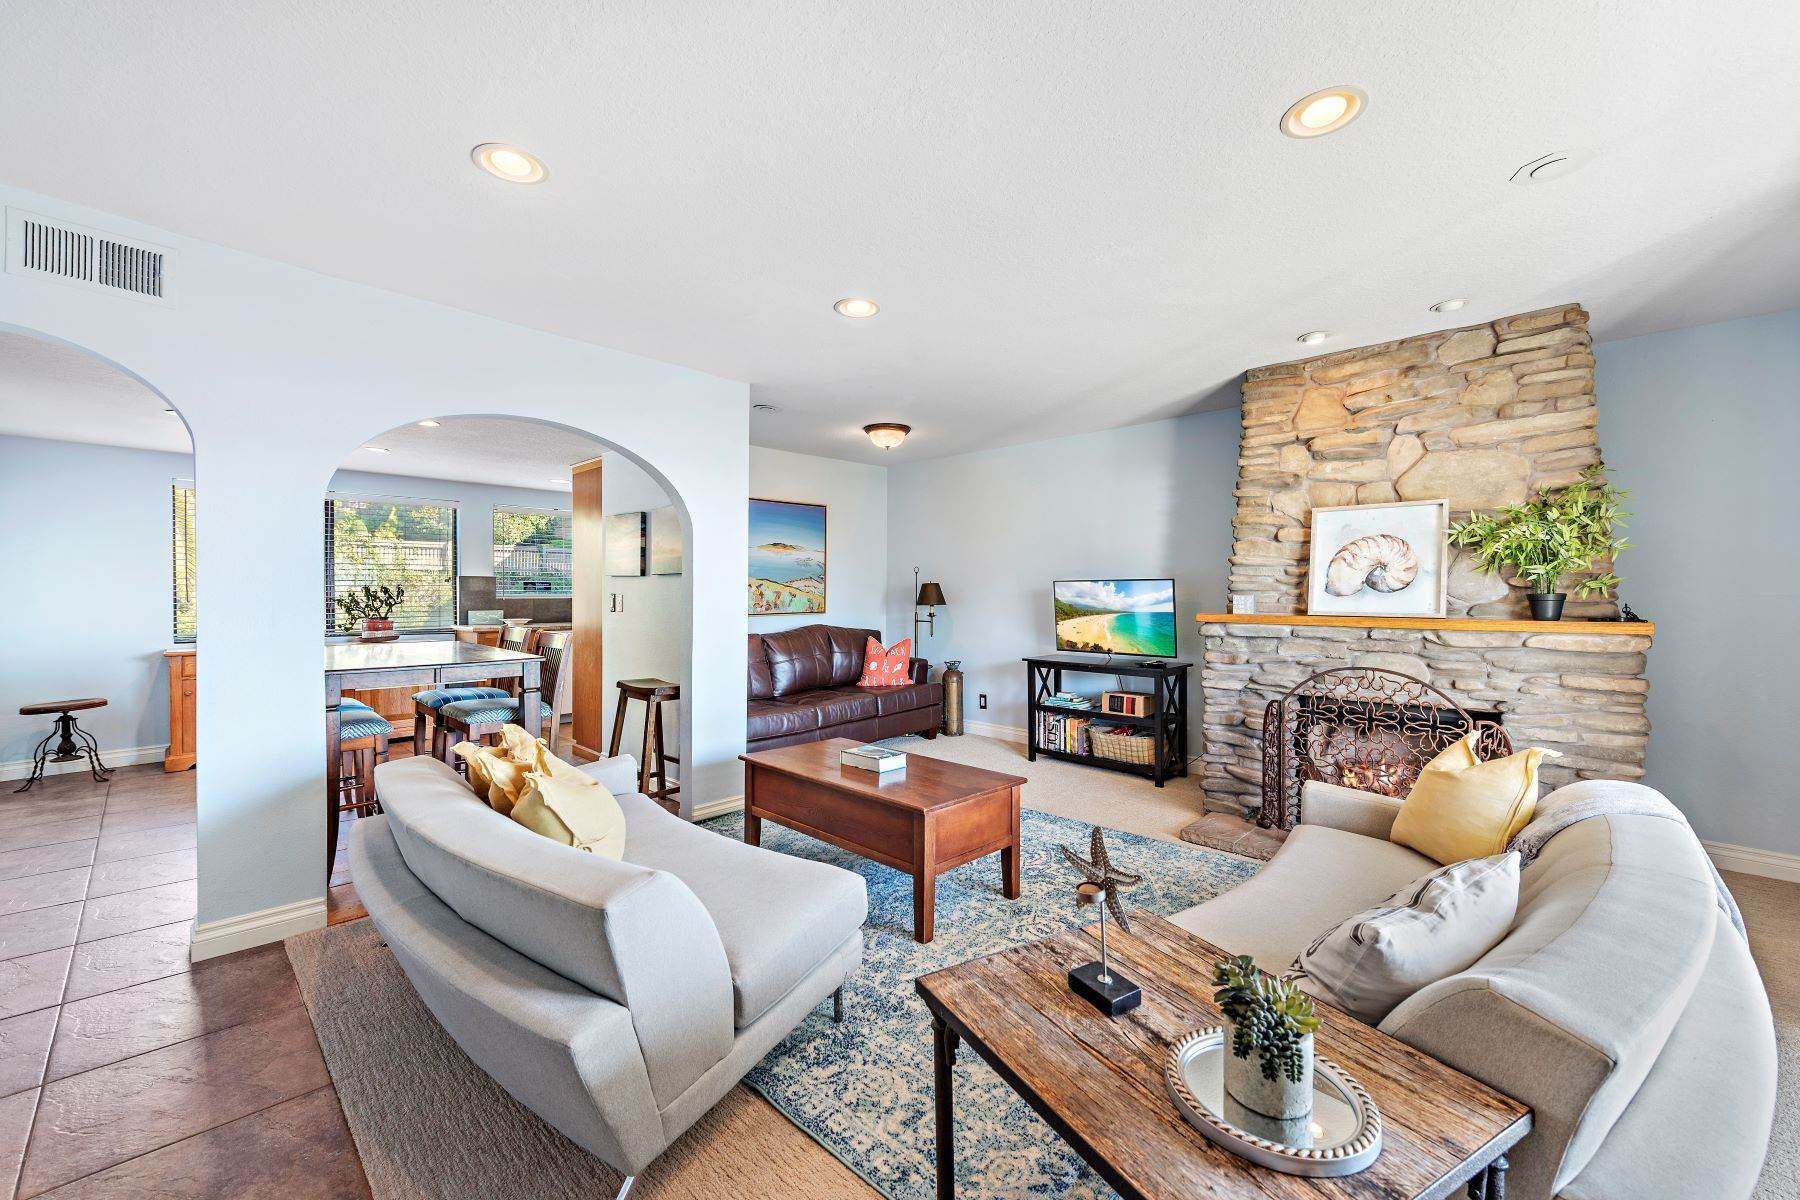 10. Condominiums for Sale at 321 Acebo Lane Unit #C, San Clemente, CA 92672 321 Acebo Lane, Unit #C San Clemente, California 92672 United States